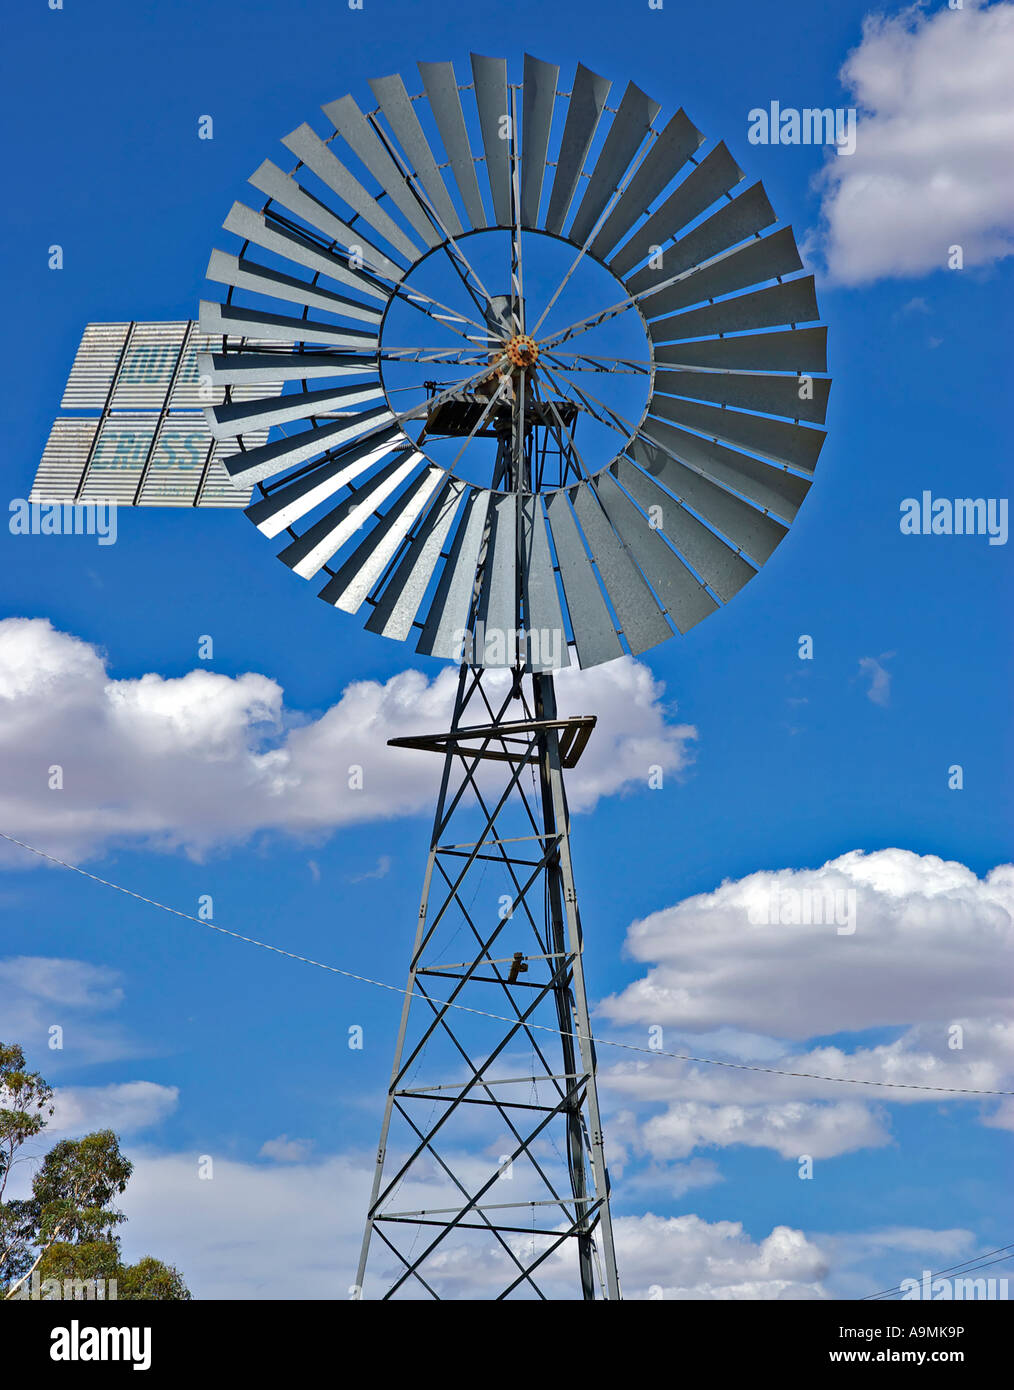 a big silver metal windmill in front of a nice cloudy blue sky - Stock Image